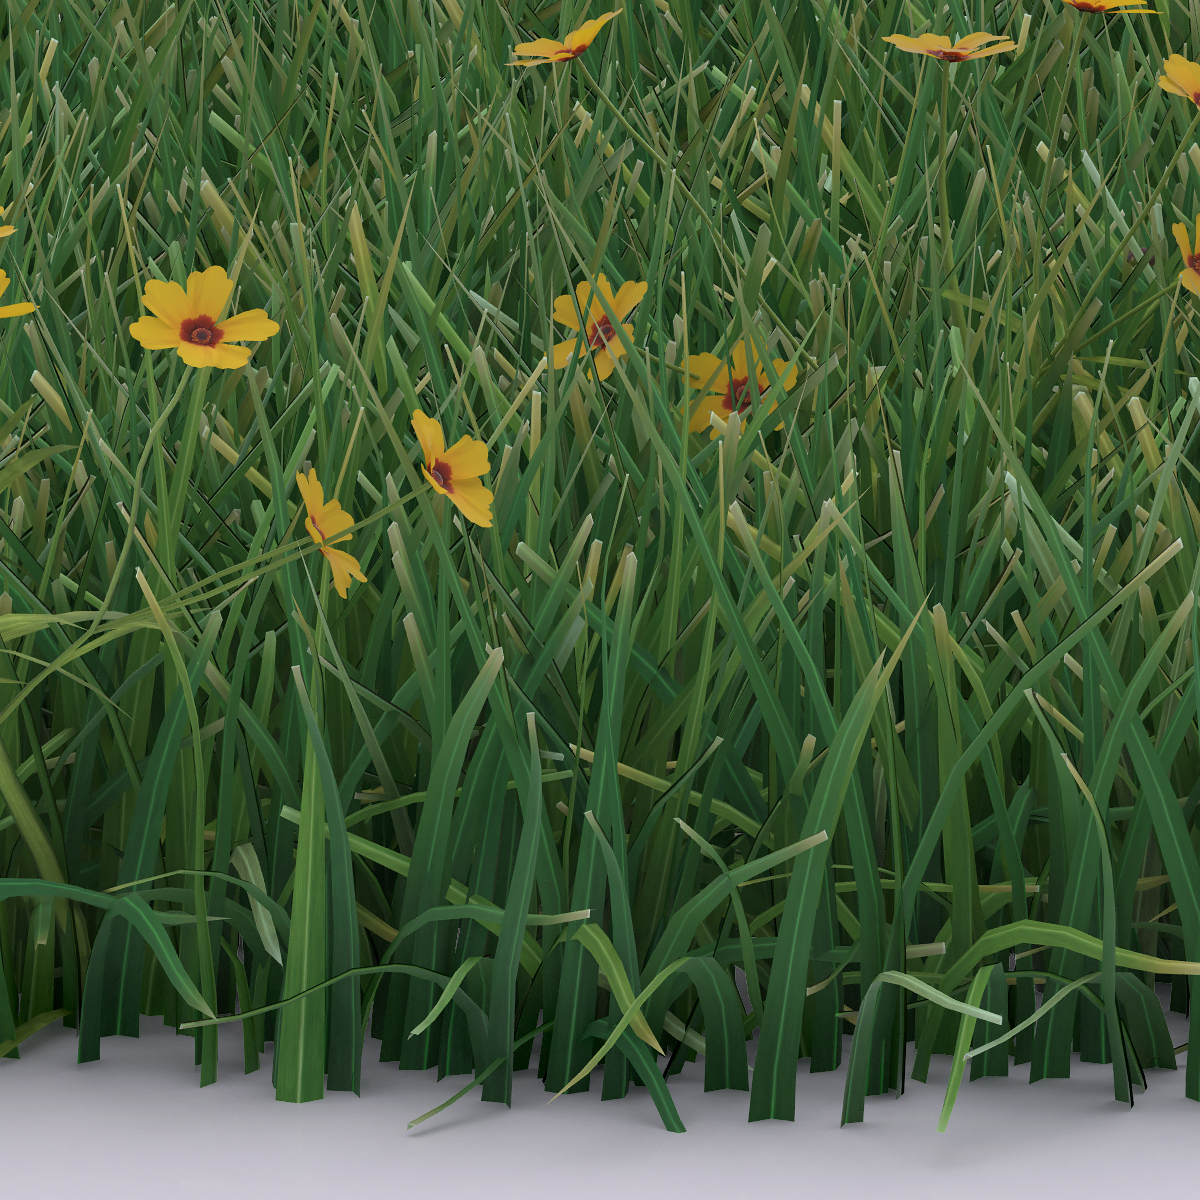 Detail Virtual Flowers and Grass 002 - 2018 - Virtual Flowers and Grass